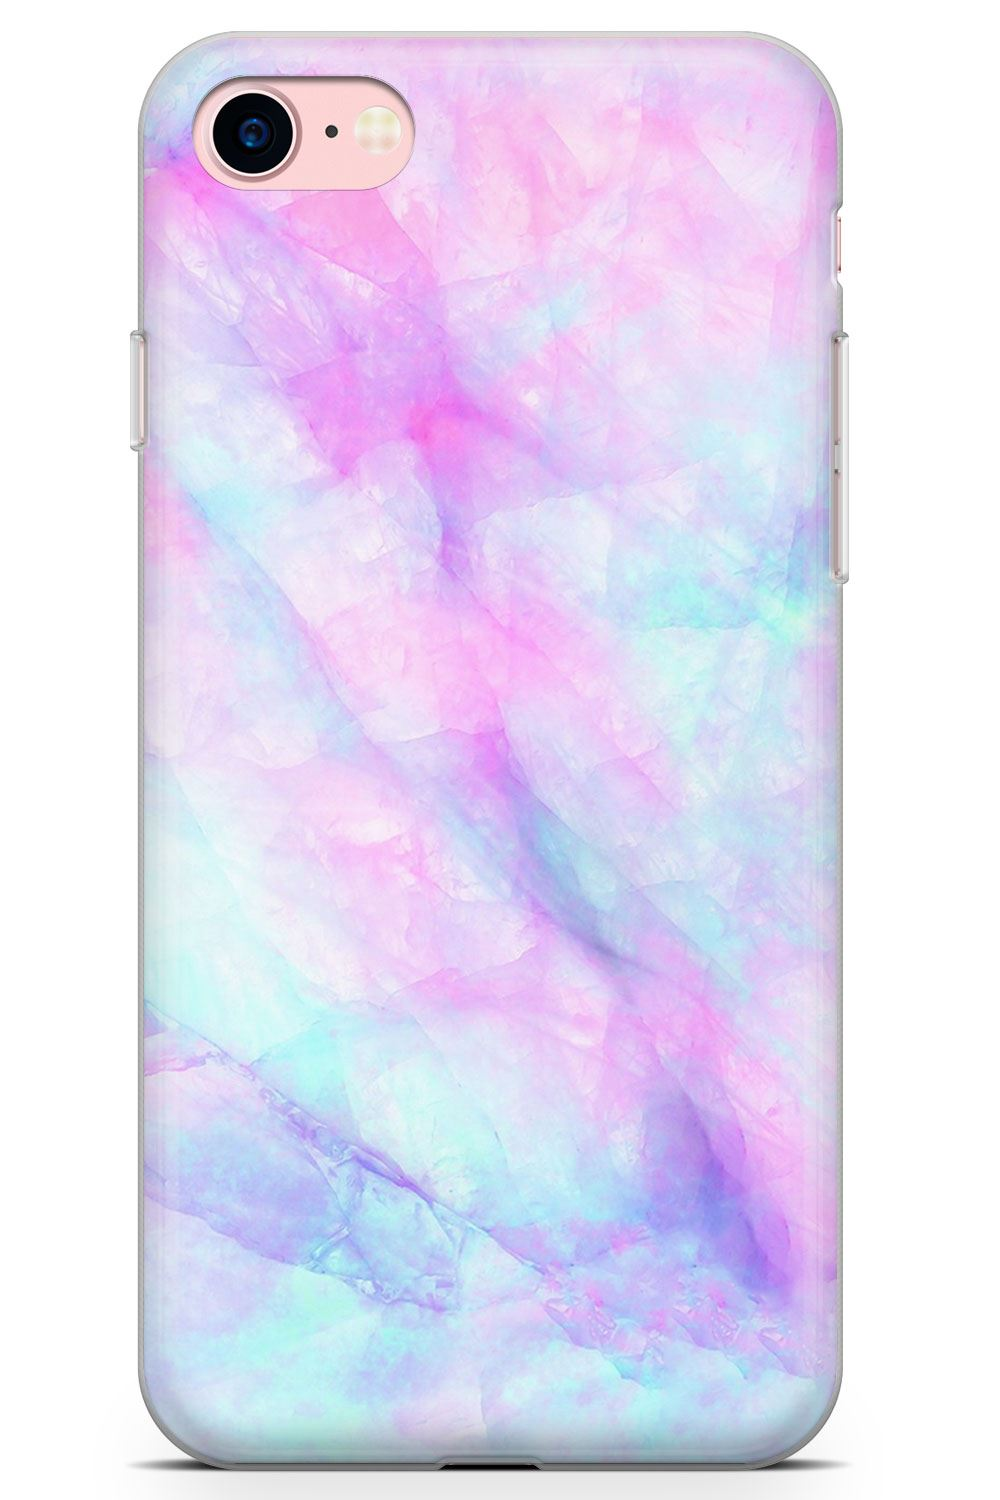 Marble-Slim-Flexible-Phone-Case-for-iPhone-Agate-Onyx-Rose-Gold-Crystal